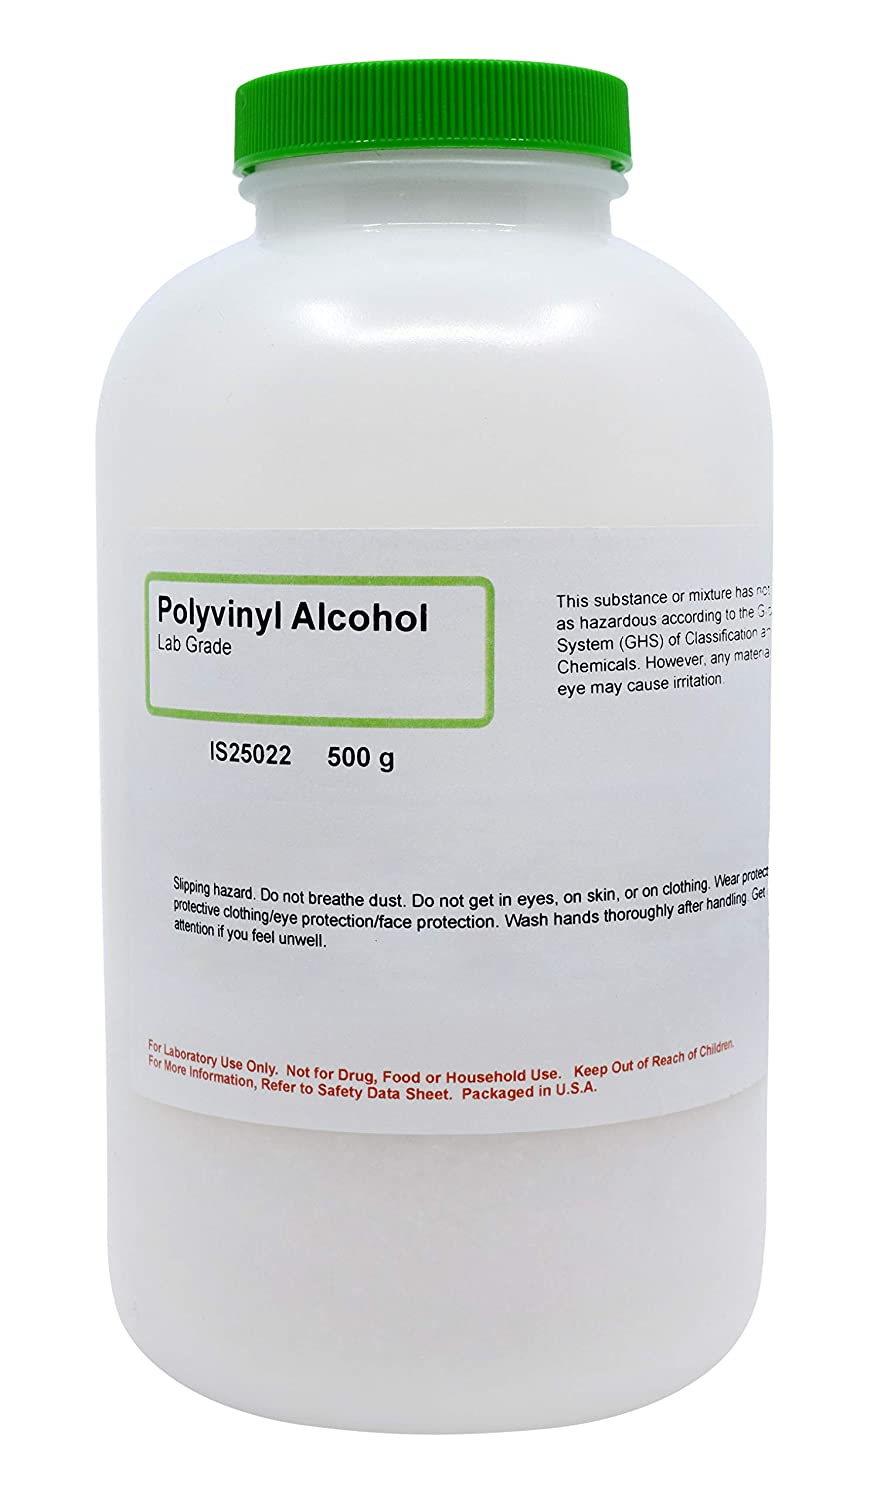 Laboratory-Grade 87% Hydrolyzed Polyvinyl Alcohol, 500g - The Curated Chemical Collection